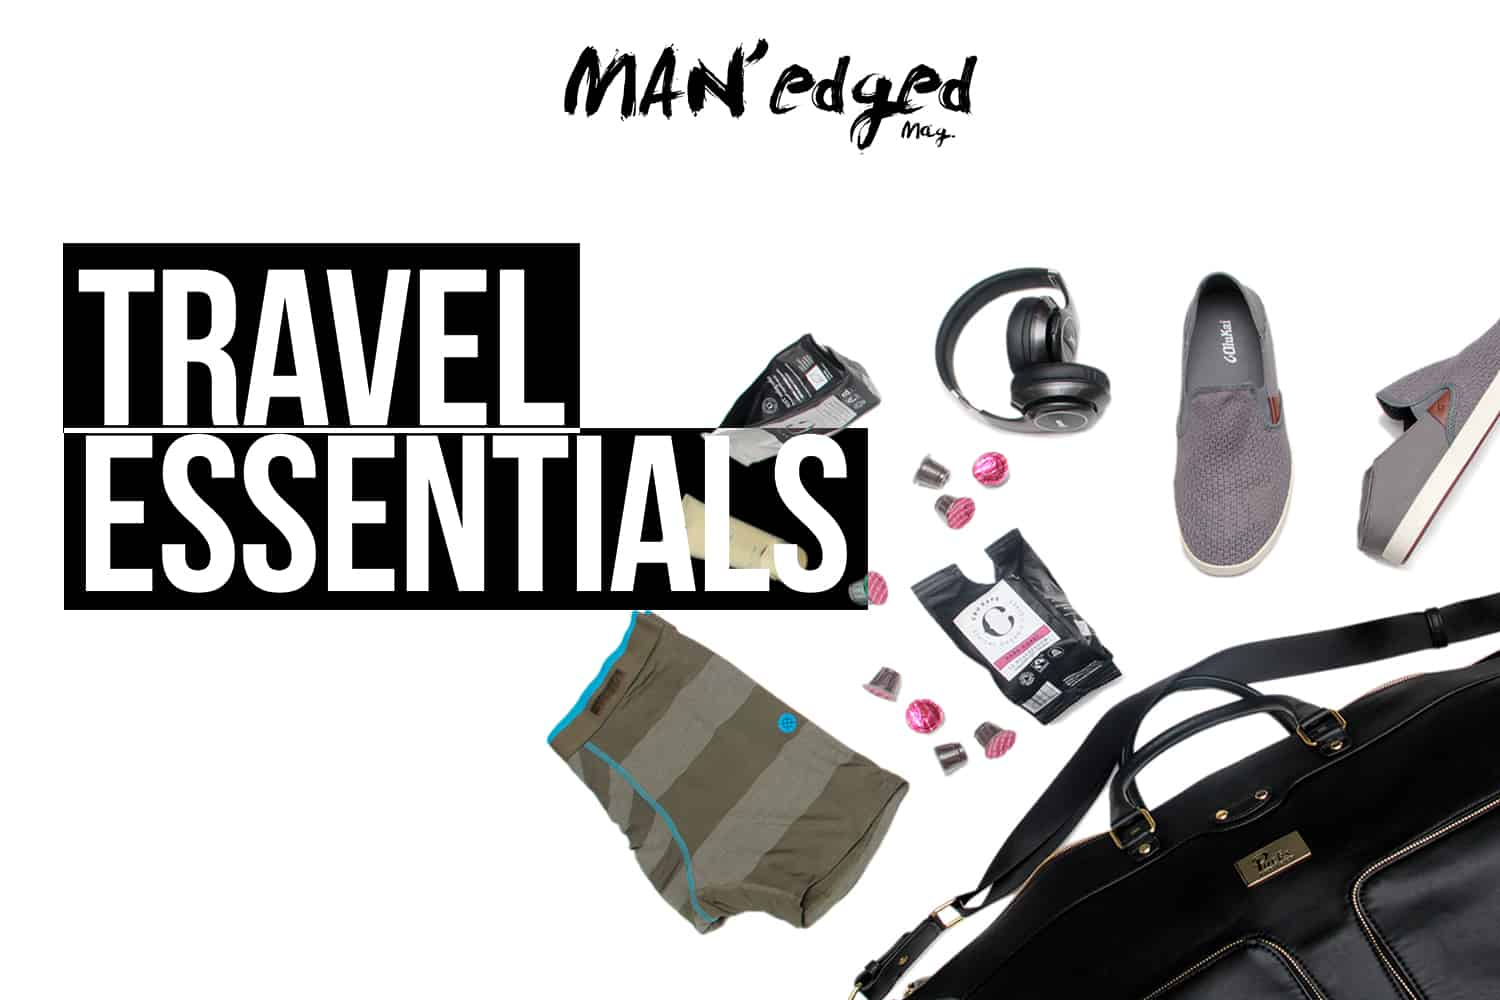 Men's travel essentails featuring Packs project bag, shoes, headphones, underwear, and coffee!